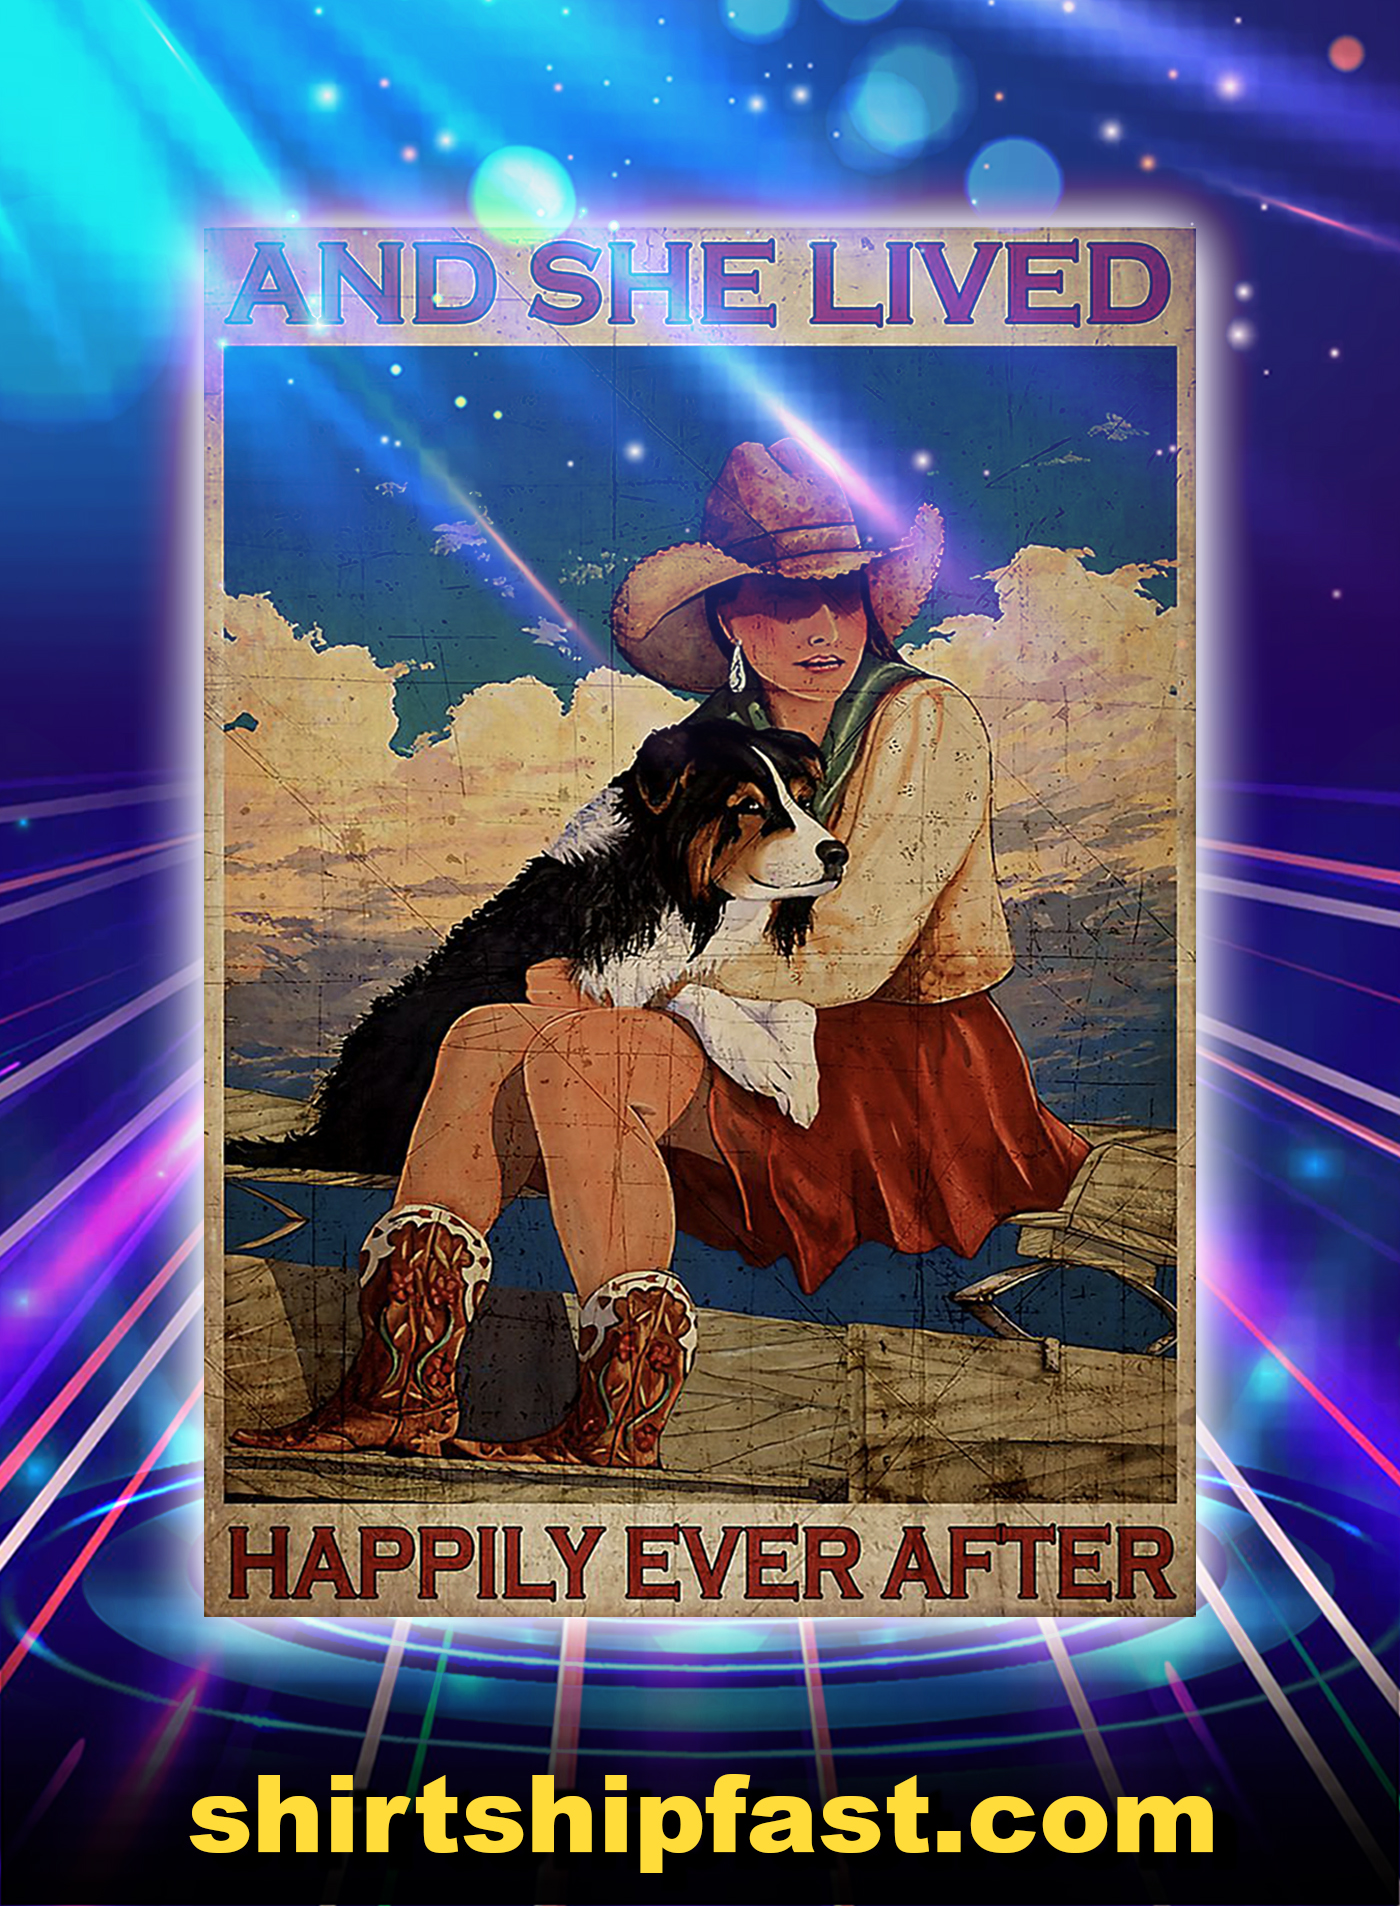 Cowgirl and dog and she lived happily ever after poster - A1